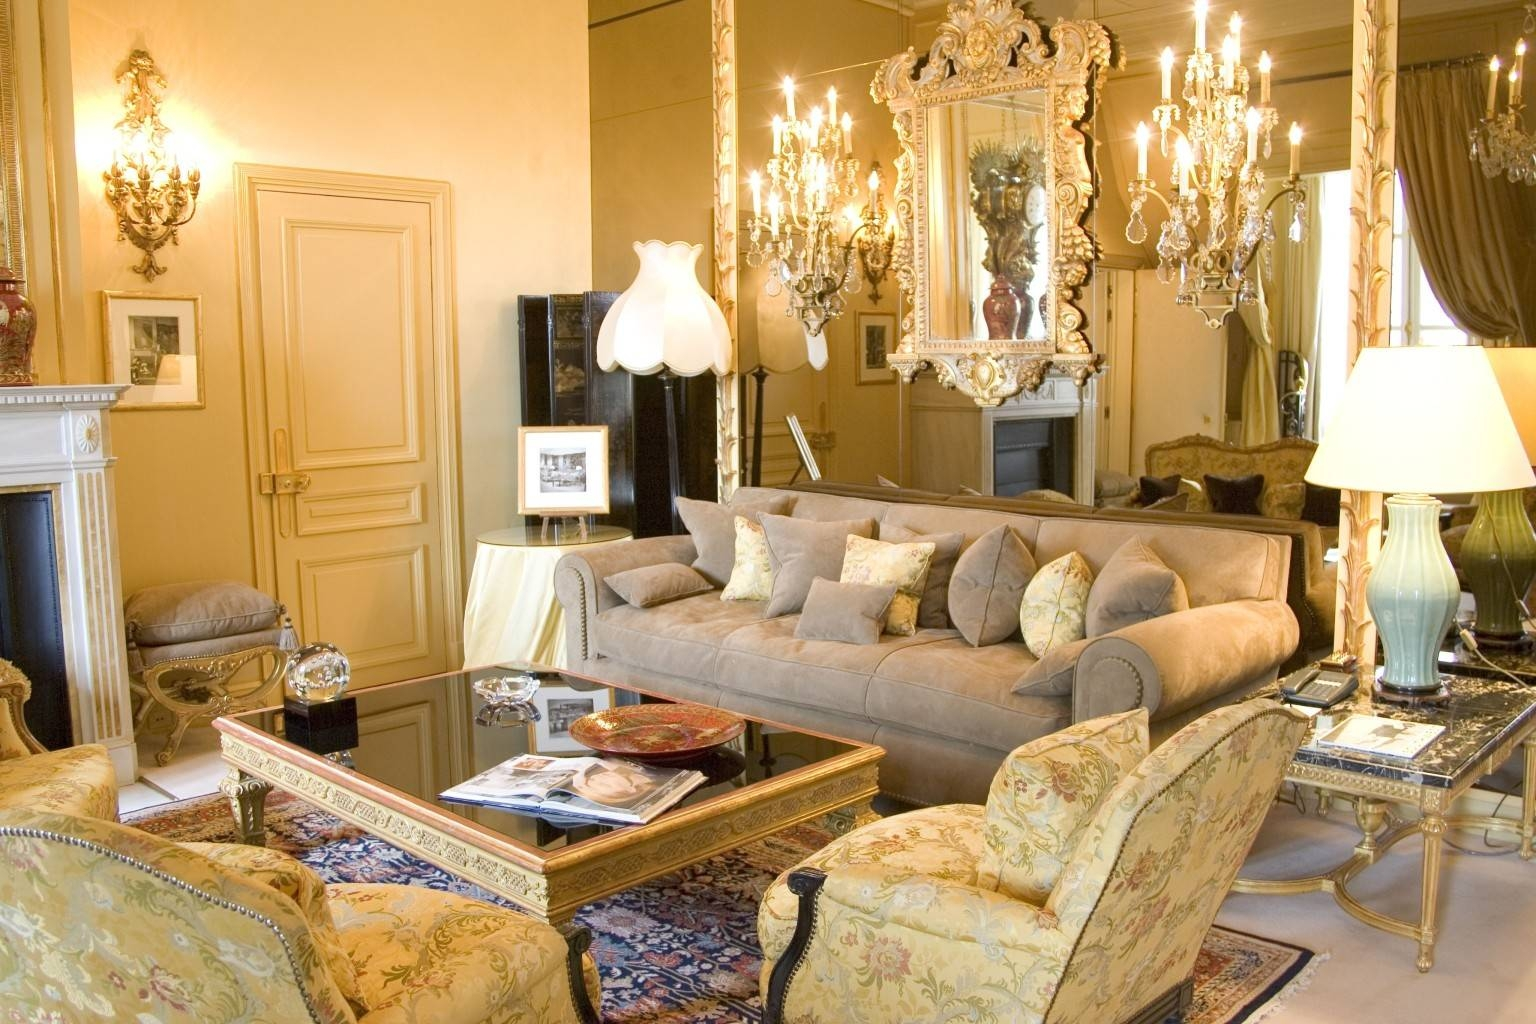 A Rare Look Inside Coco Chanel's Fabulous Parisian Apartment With intended for Coco Chanel Sofas (Image 7 of 15)